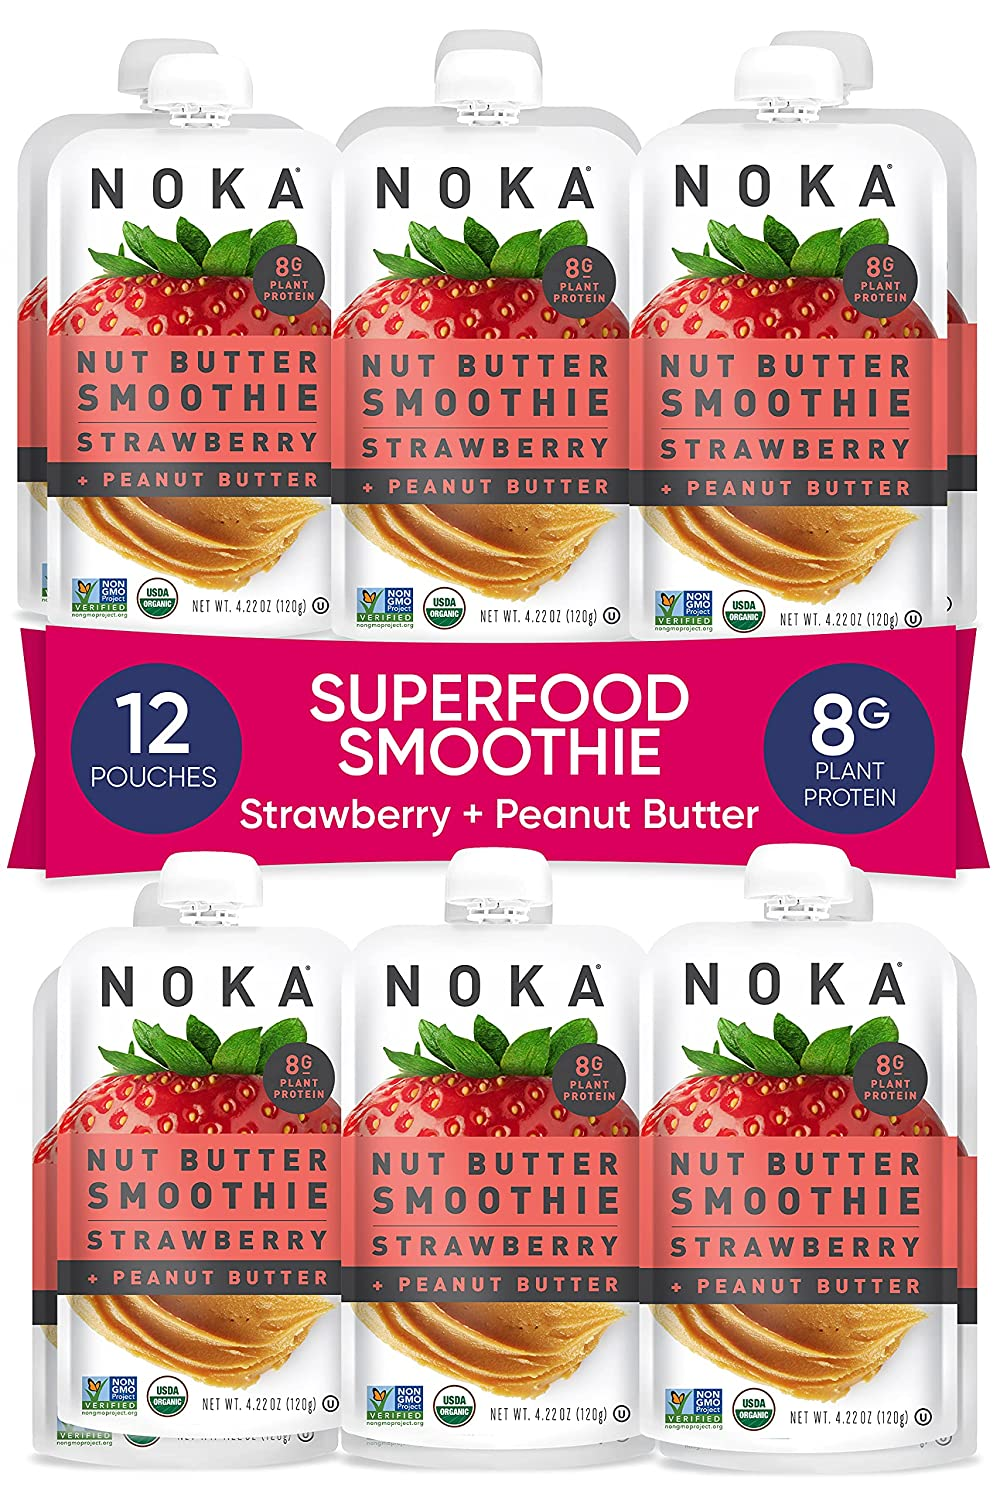 NOKA Nut Max 86% OFF wholesale Butter Fruit Peanut Smoothie Pouches Strawberry